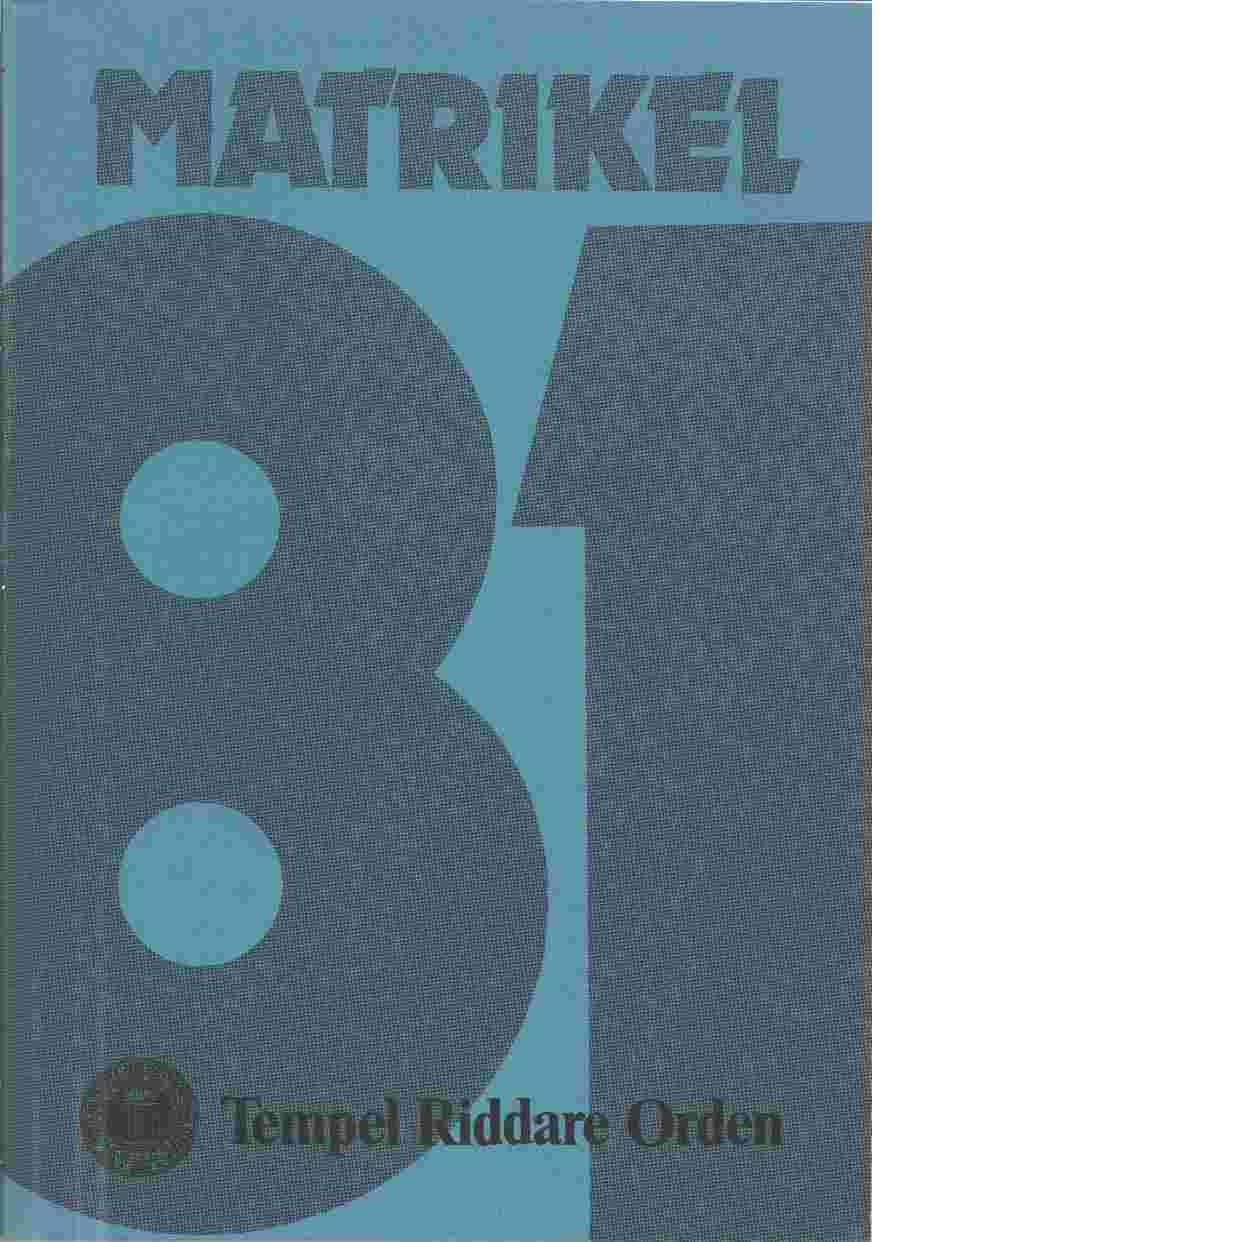 Matrikel 1981 Tempel Riddare Orden - Council Supreme